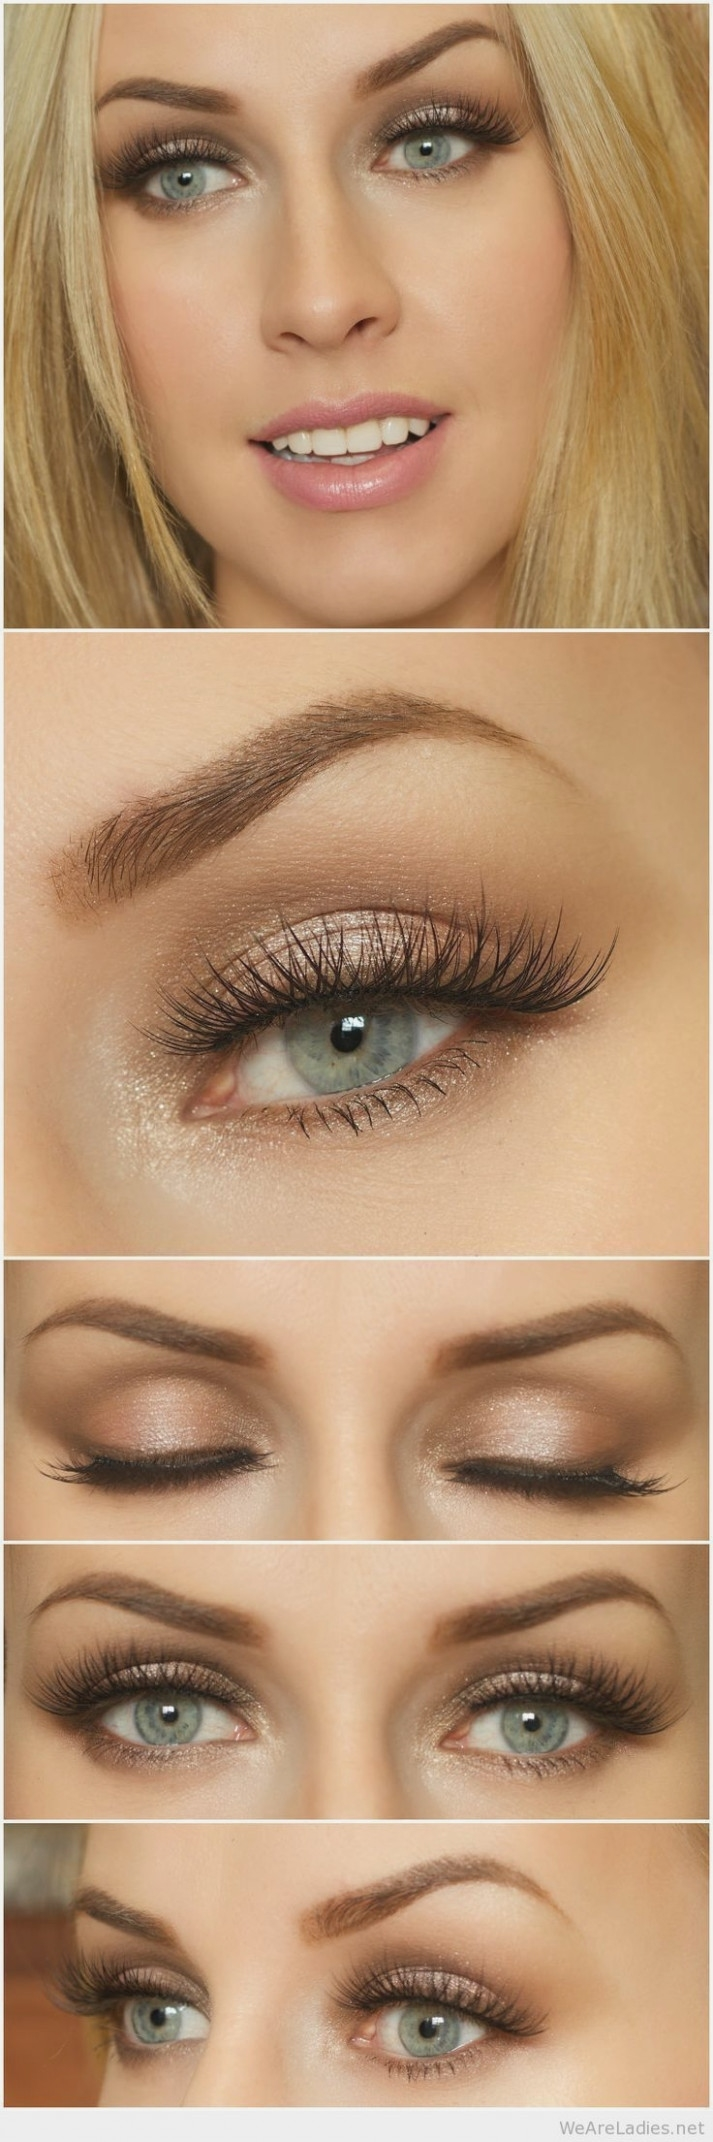 Good Makeup For Green Eyes And Pale Skin | Saubhaya Makeup with regard to How To Do Makeup For Green Eyes And Pale Skin